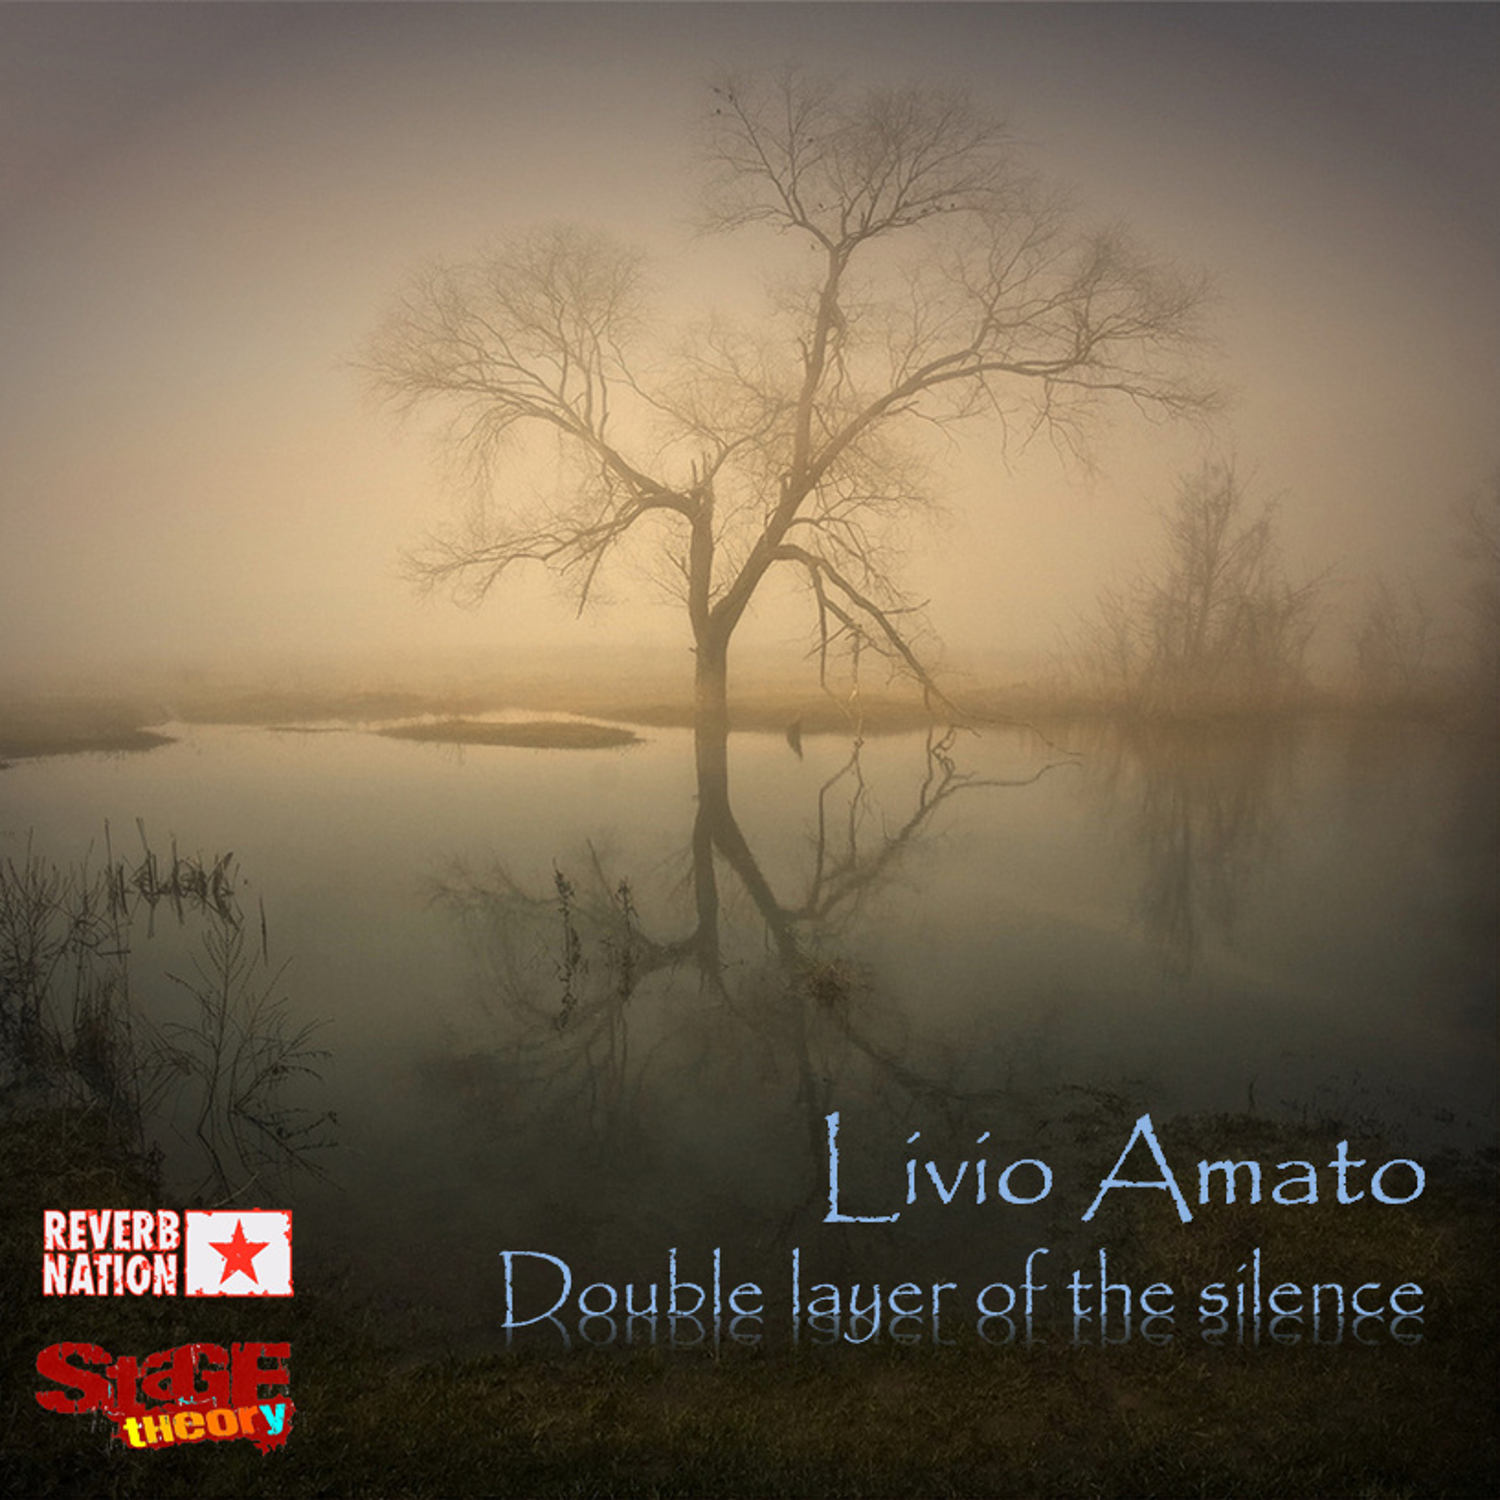 livio amato OST UVU student double layer of the silence kirkbride asylum documentary s.l. mima 2010, 2015